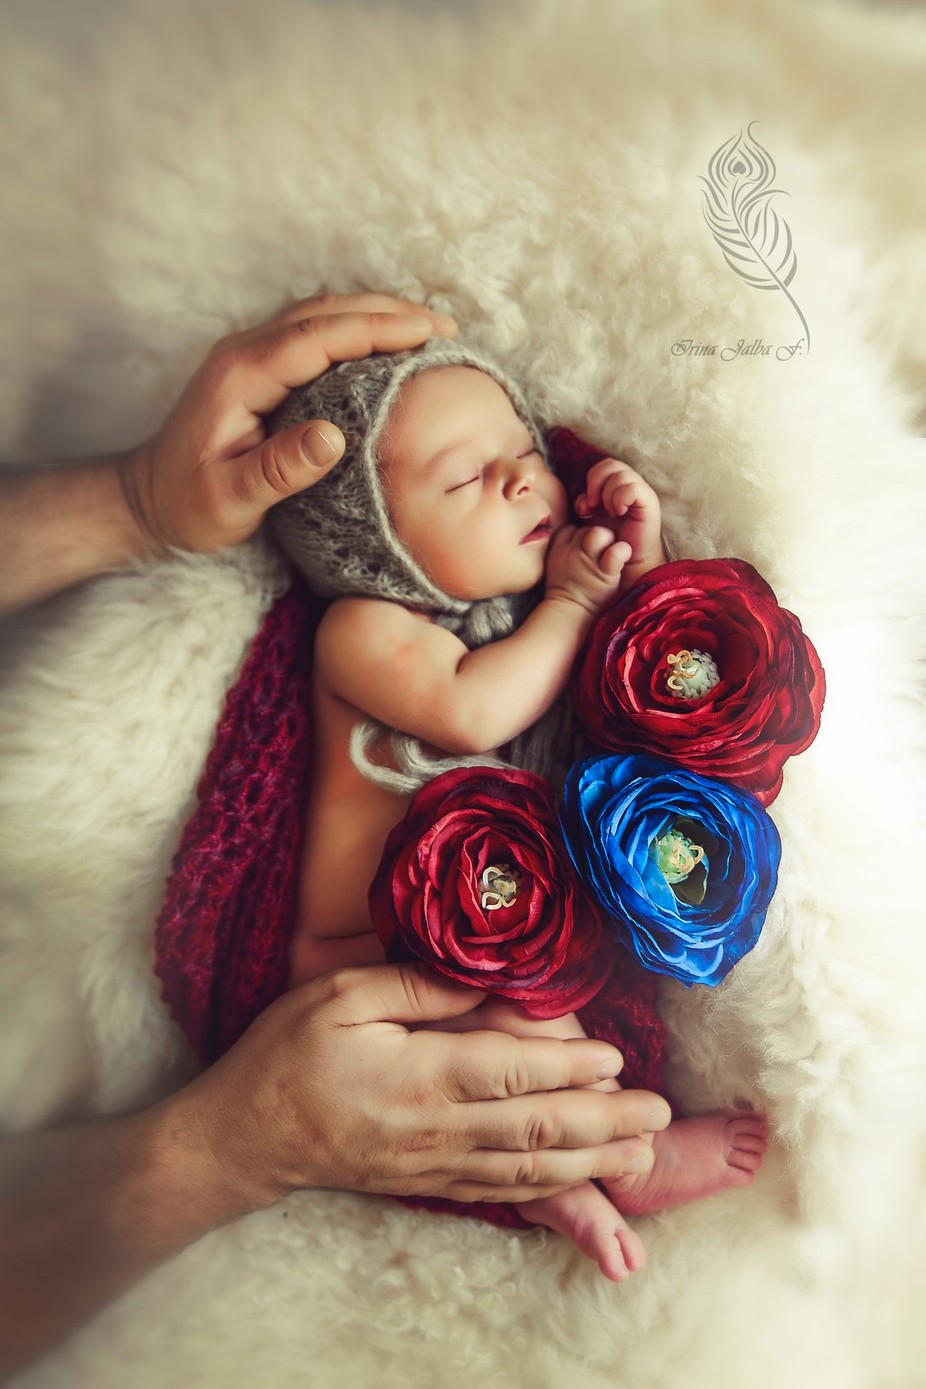 _MG_3782-Editar by IrinaJalbaFurtuna - Baby Face Photo Contest